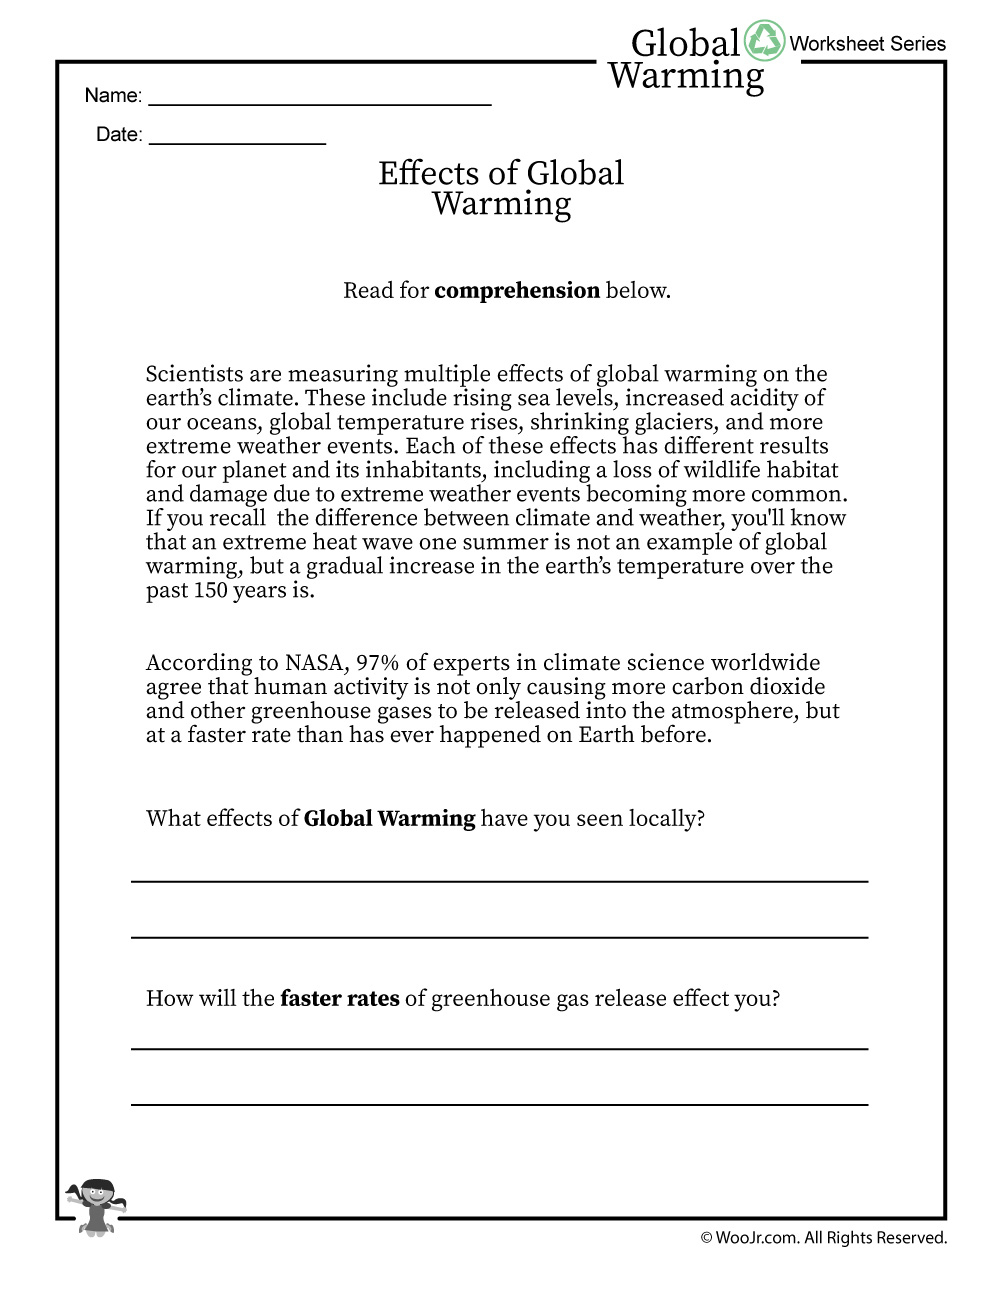 Global Warming Effects Printable Reading Worksheet | Woo! Jr. Kids | Climate Change Printable Worksheets